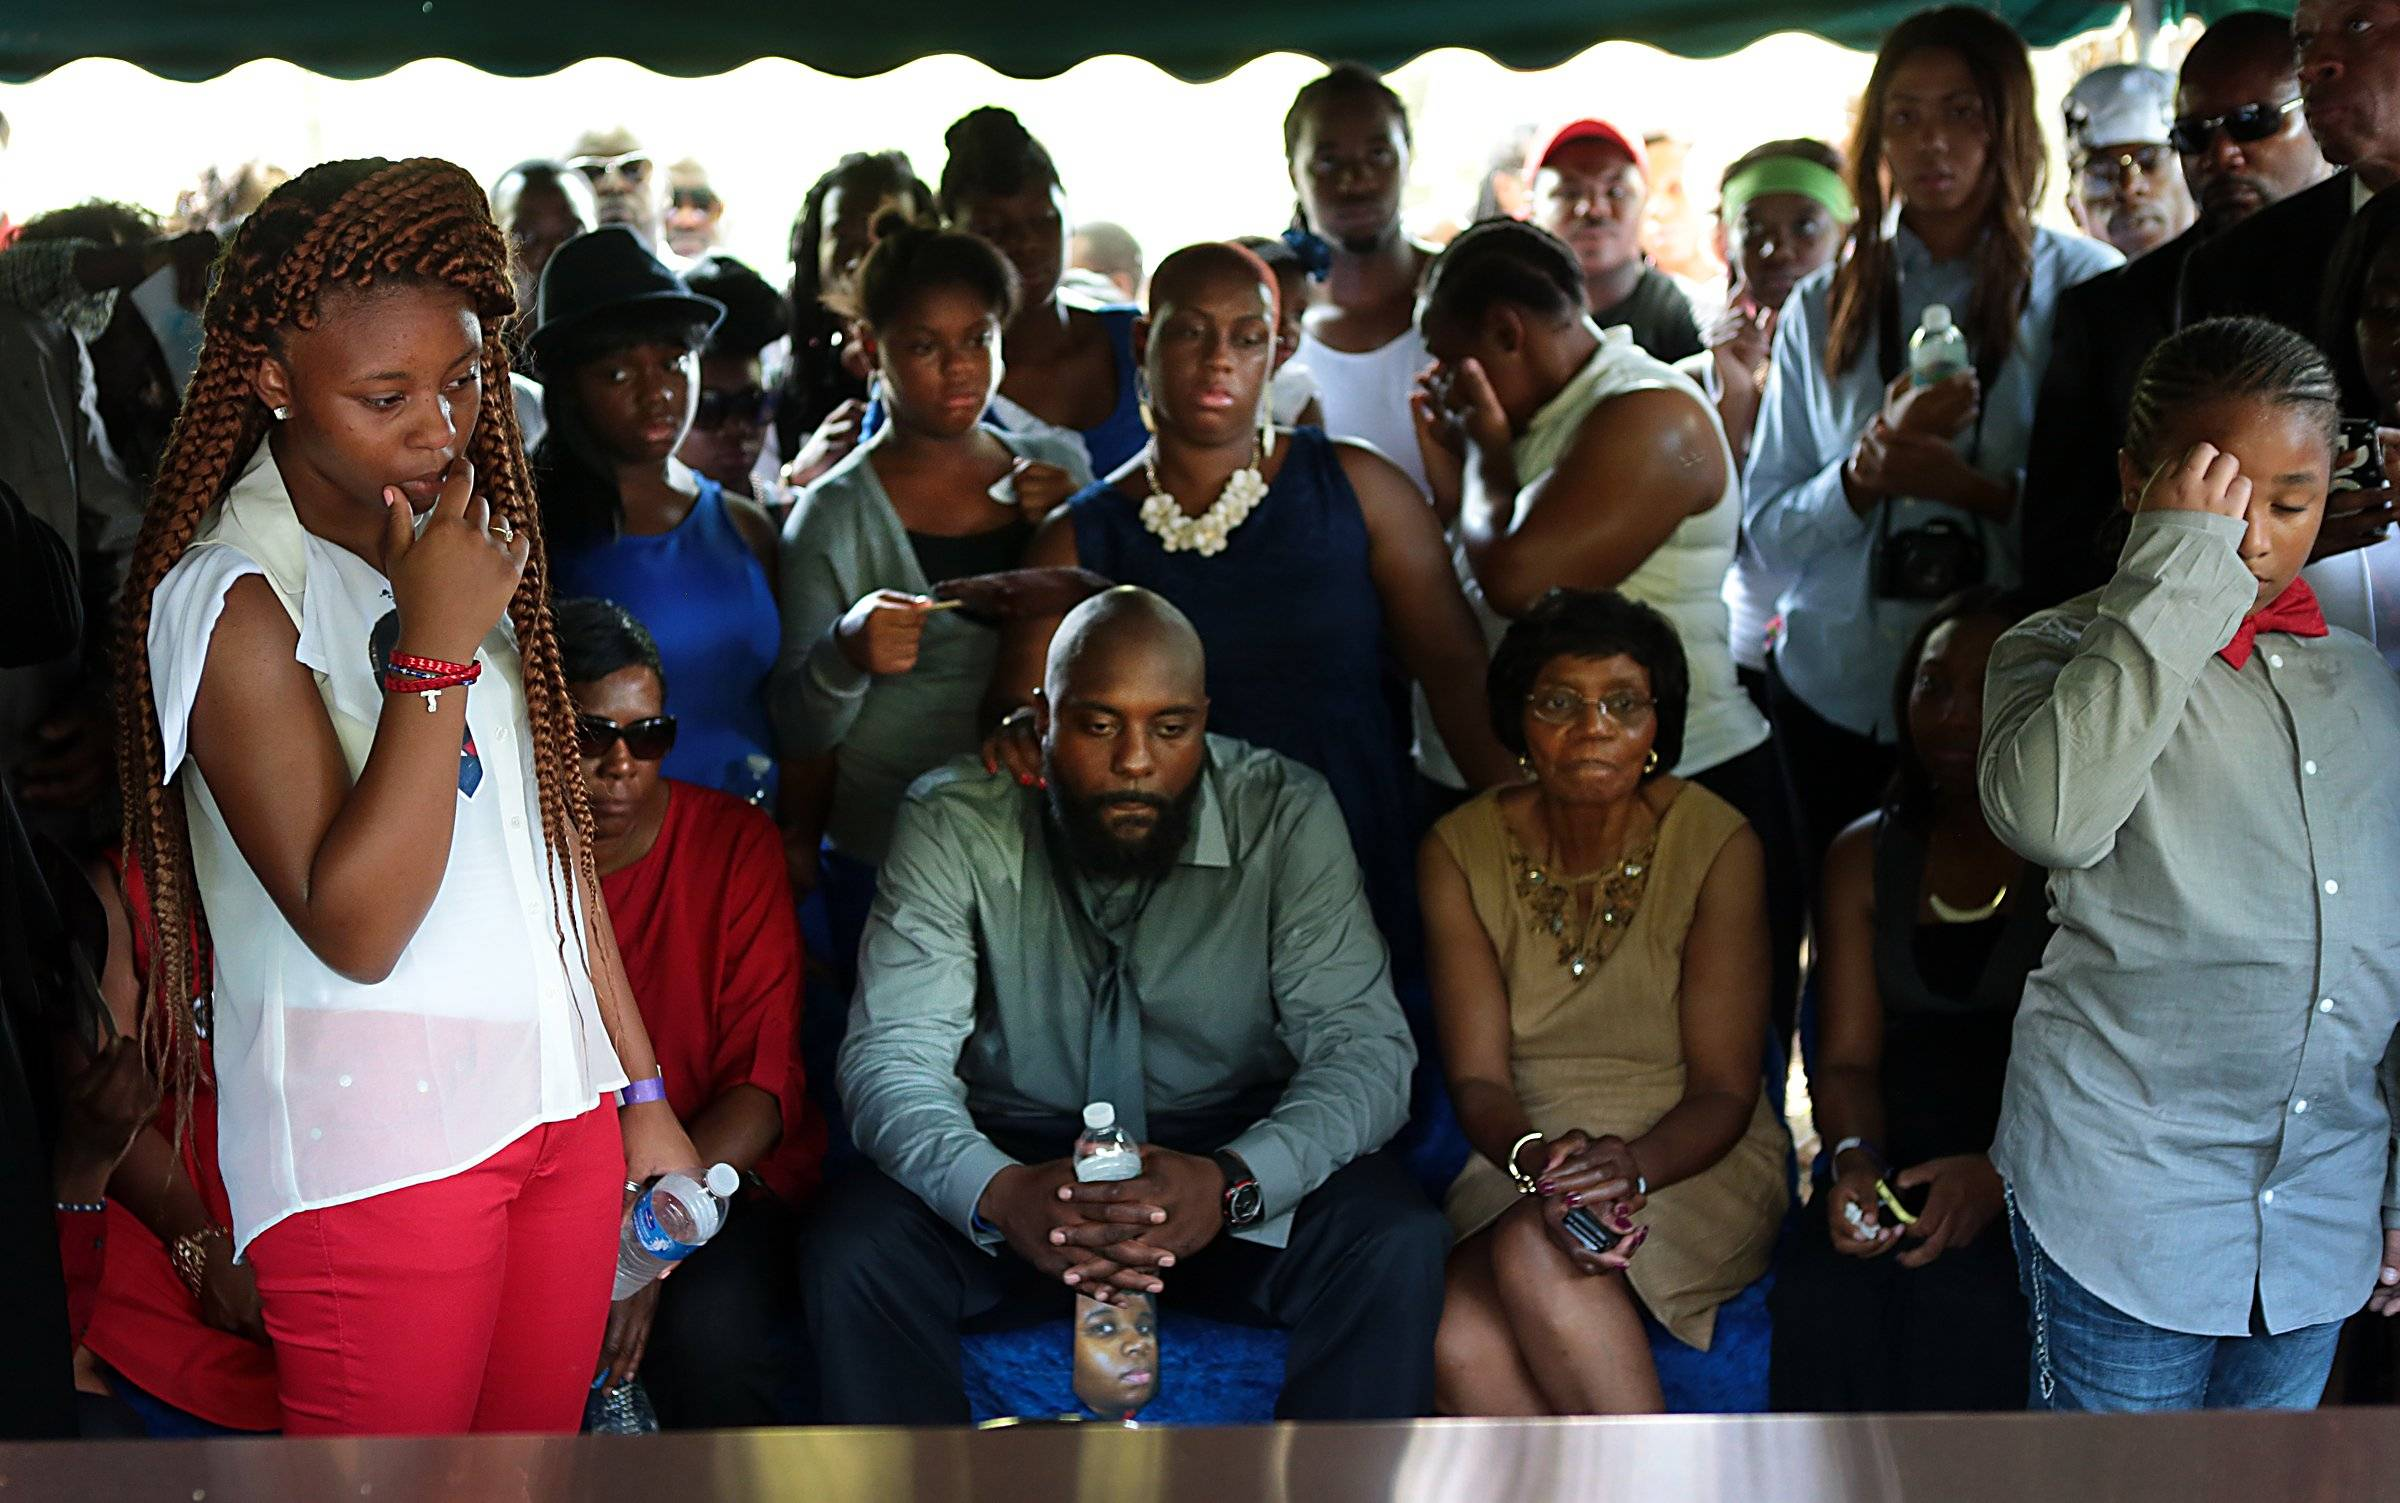 The family of Michael Brown, including his father Michael Brown Sr., center, watches as his vault is lowered during the funeral for Michael Brown on Monday in Normandy, Mo.